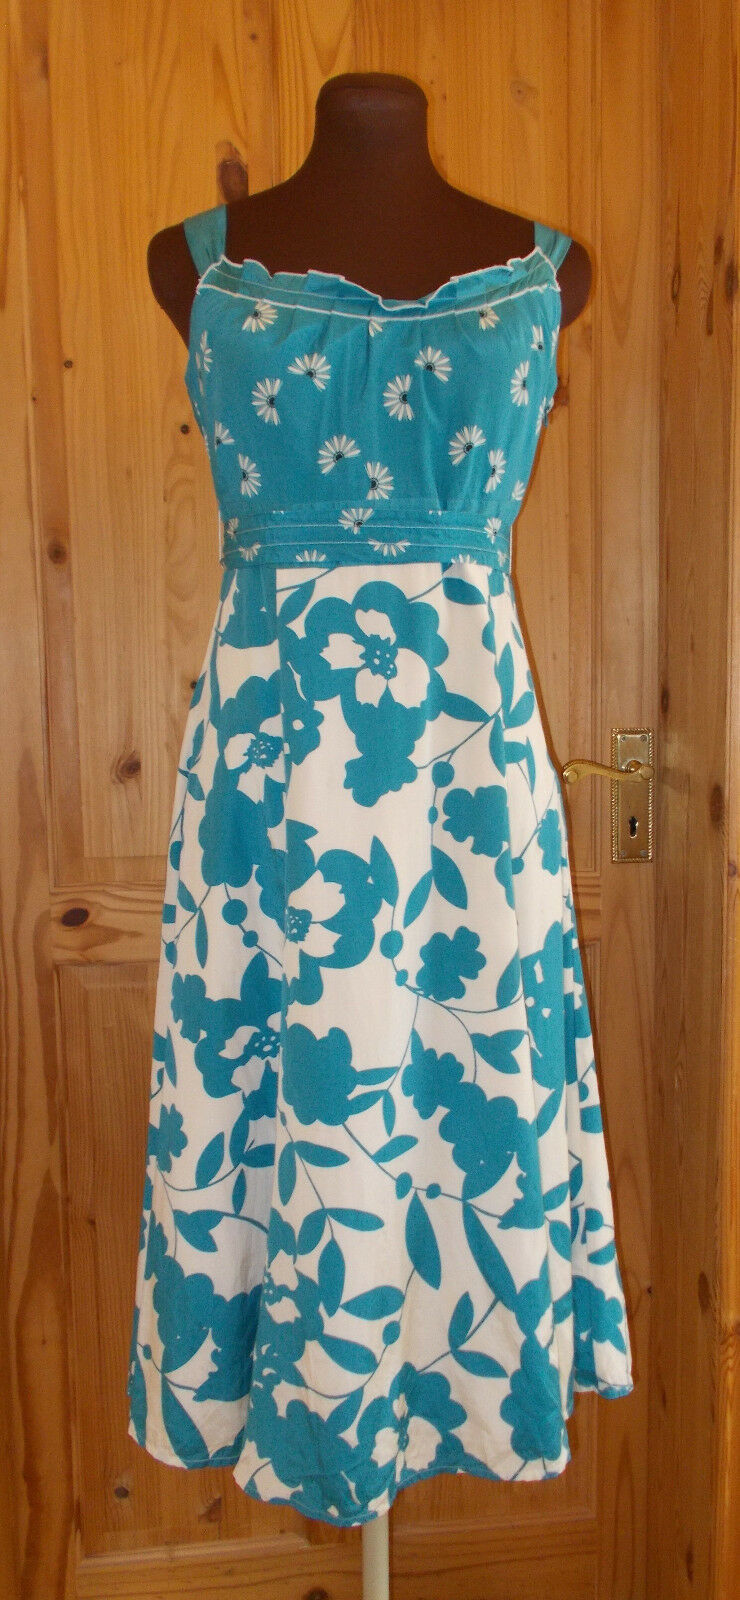 MONSOON cream ivory off-white teal turquoise floral SILK party tea dress 12 40